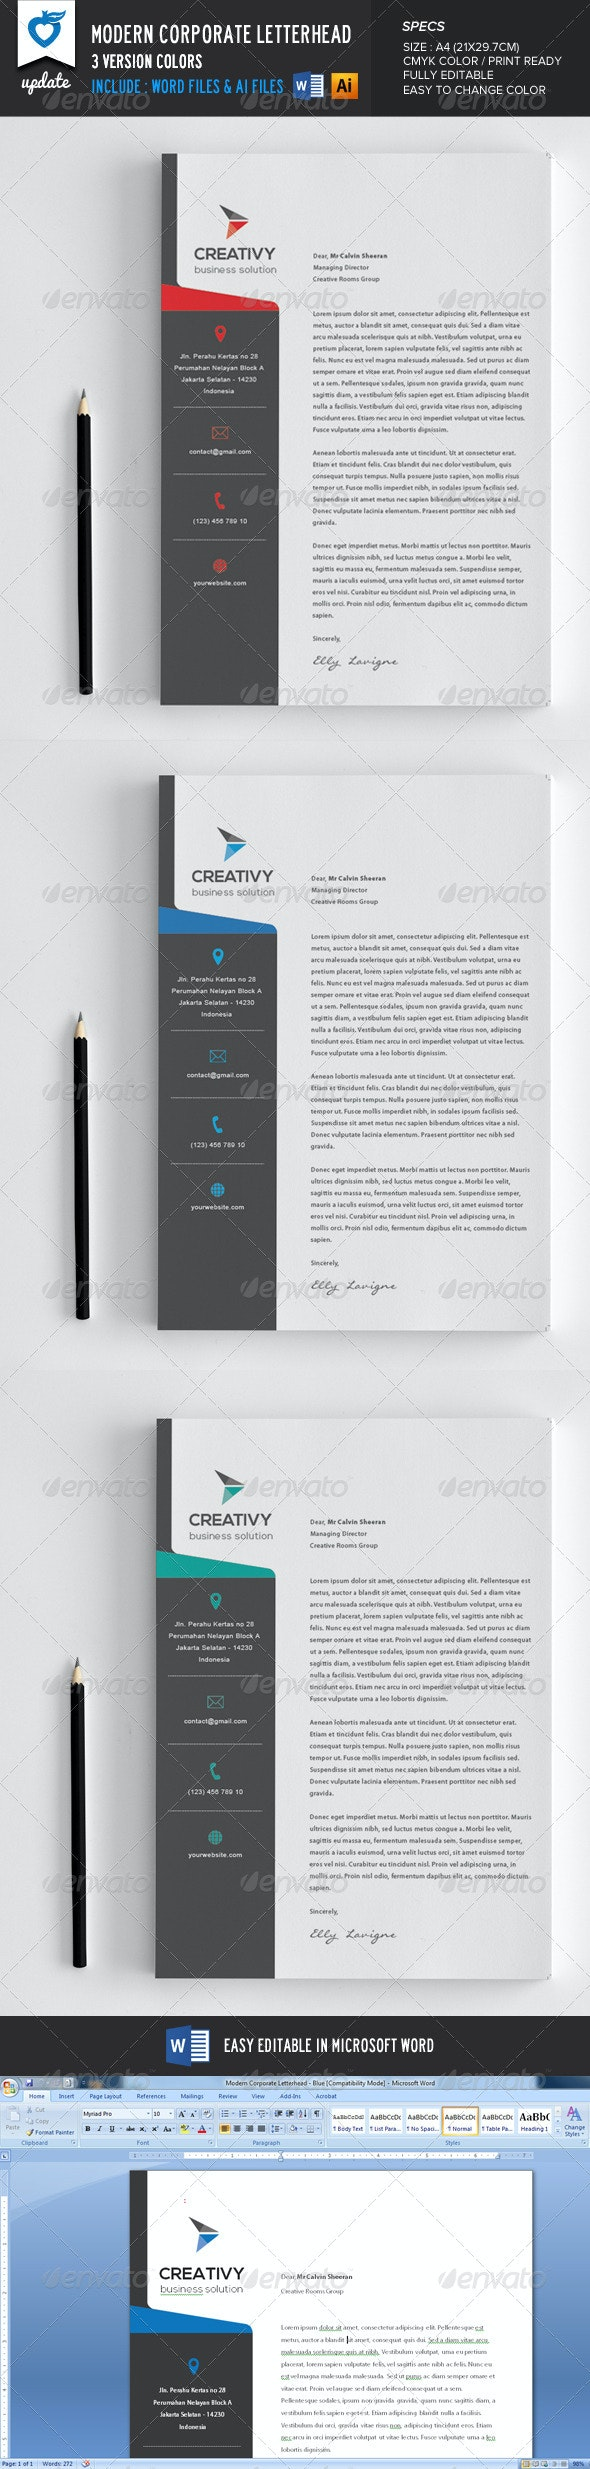 Modern Corporate Letterhead - Stationery Print Templates